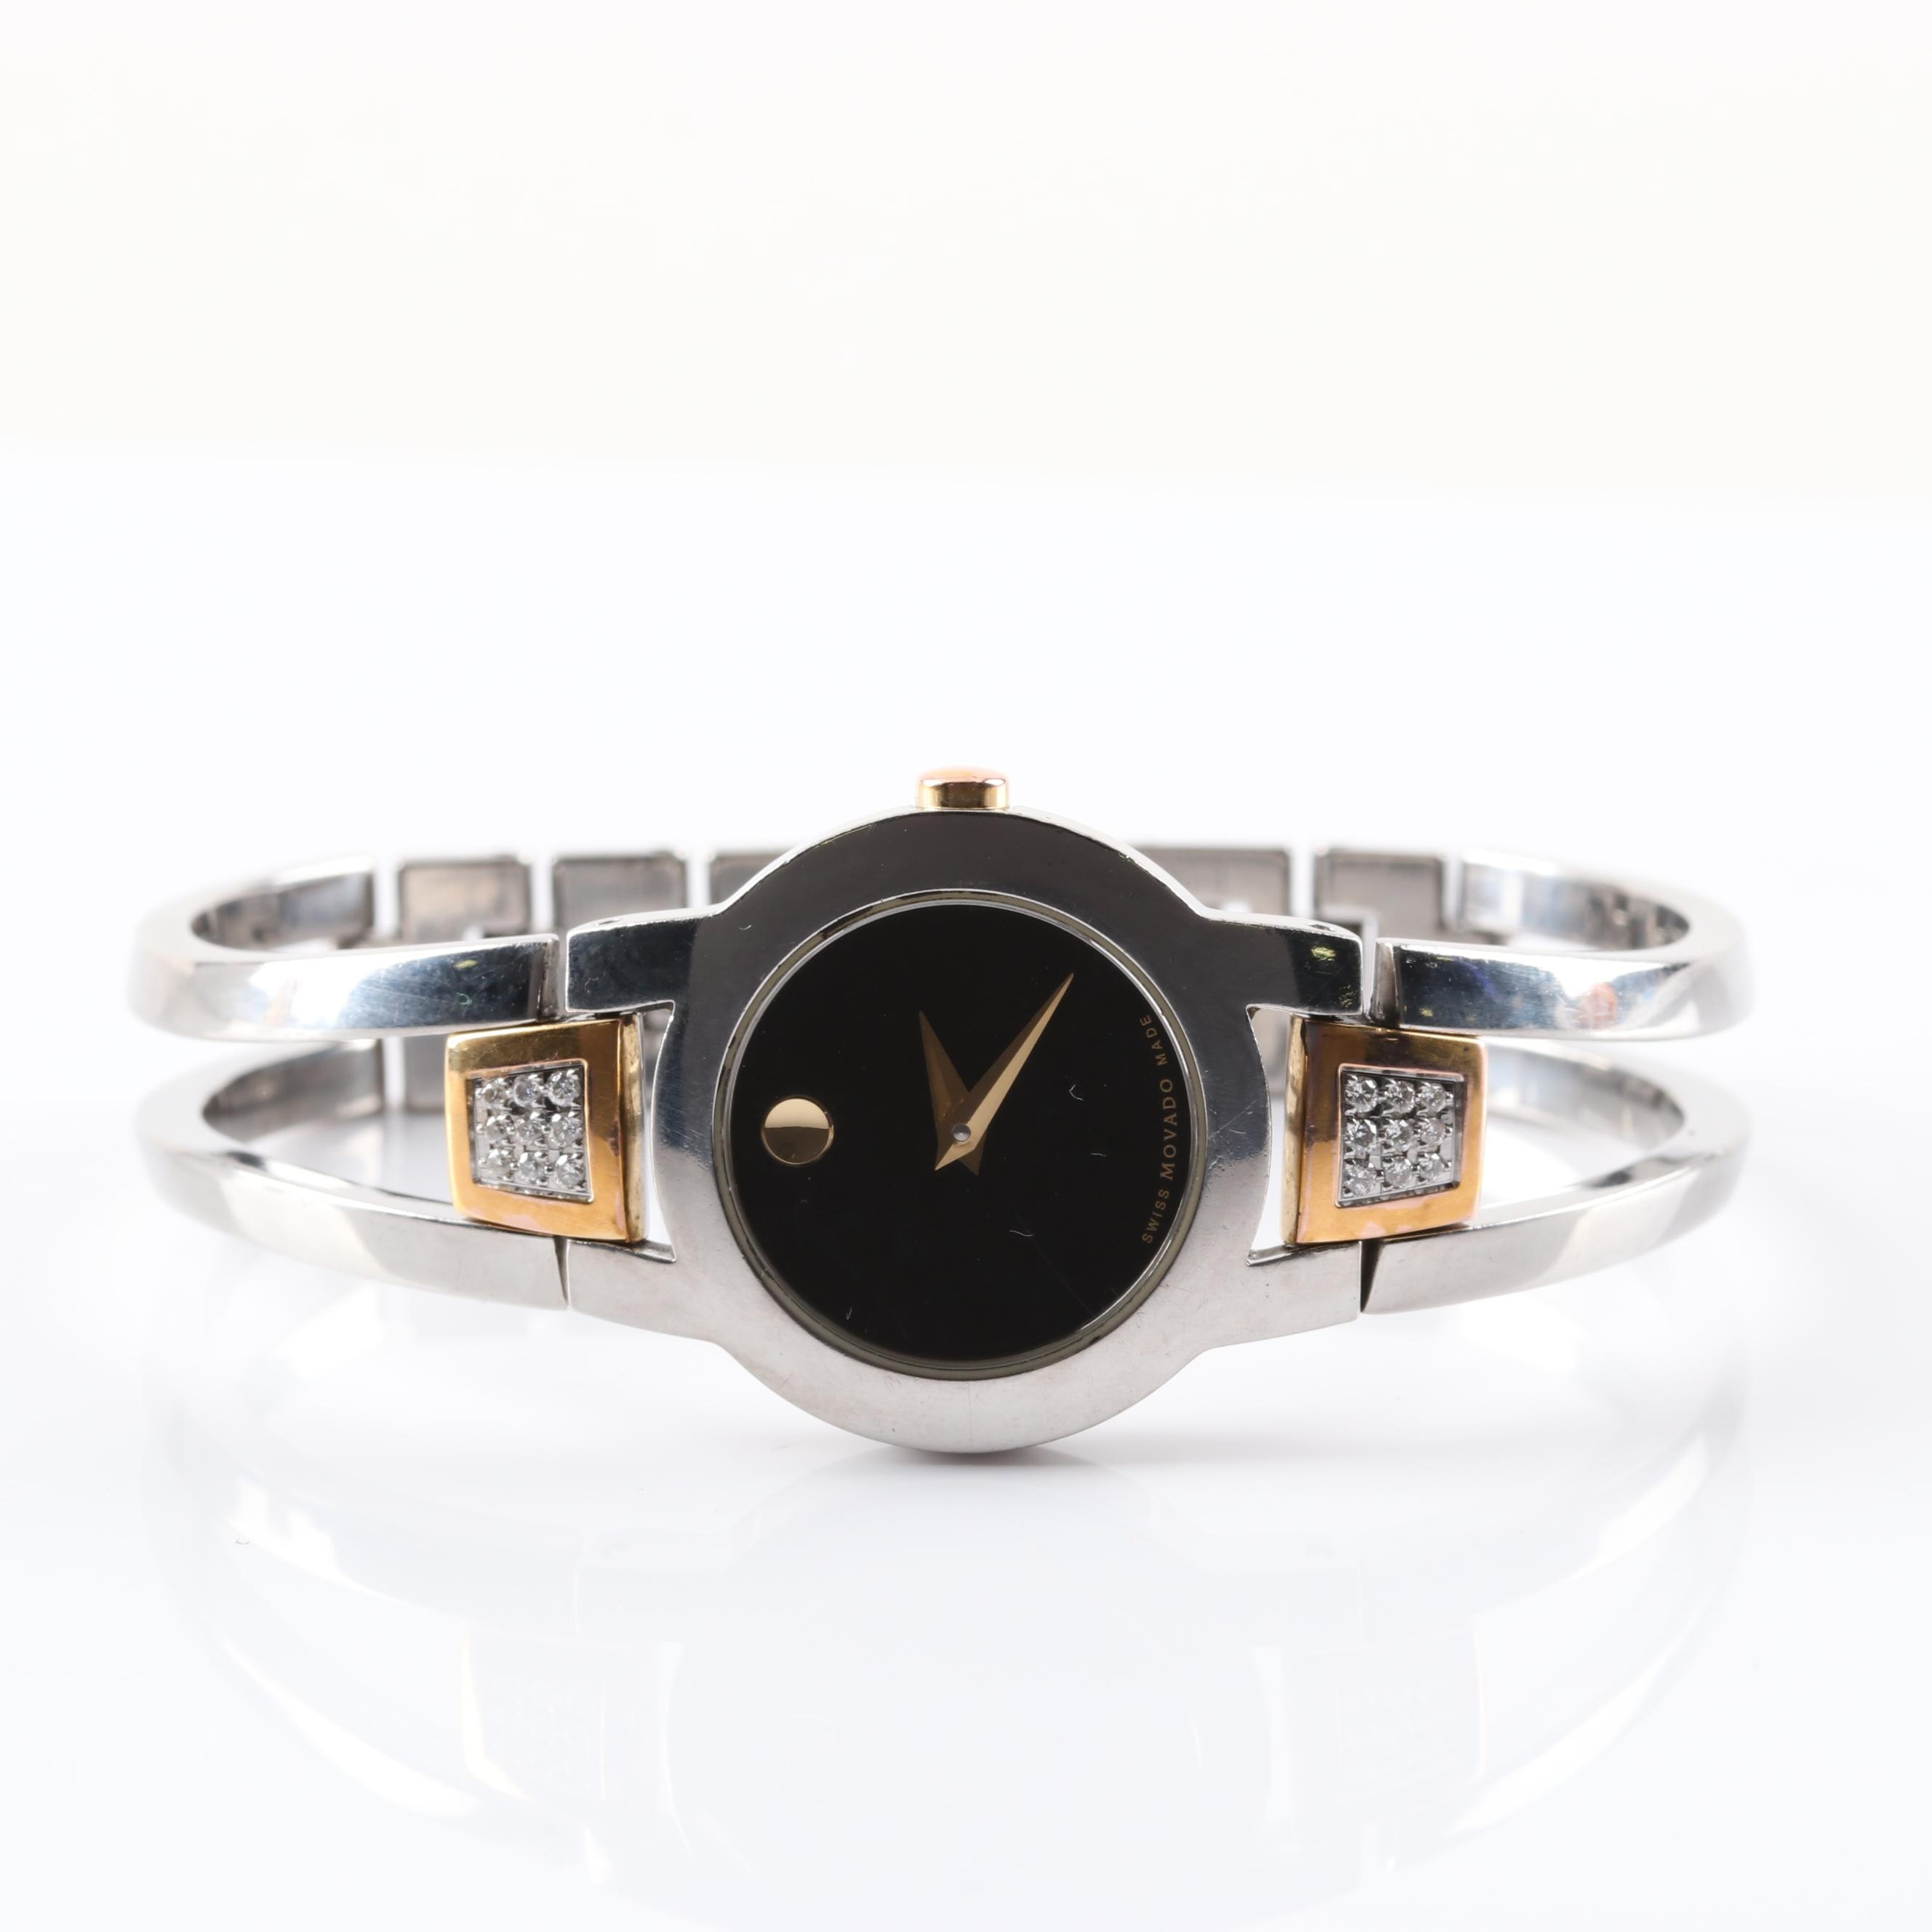 Movado Stainless Steel and Diamond Wristwatch